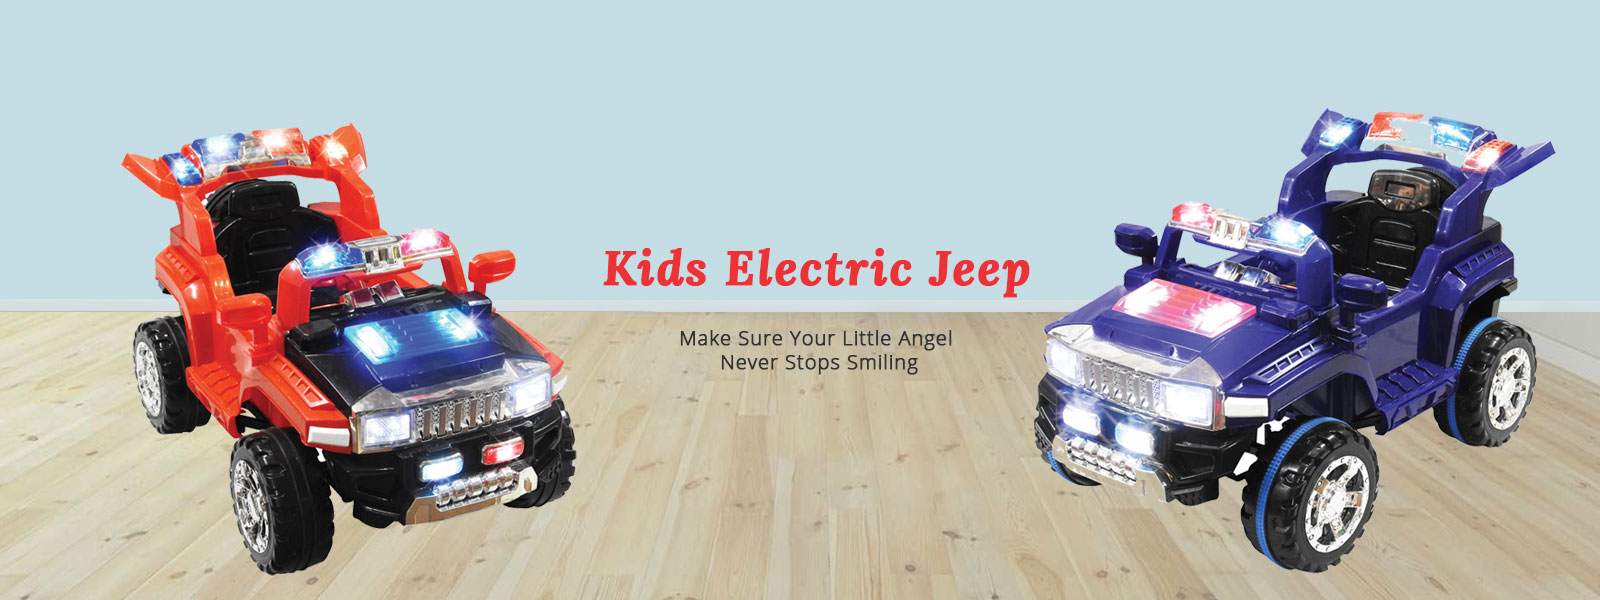 Kids Electric Jeep Manufacturers in Ajmer